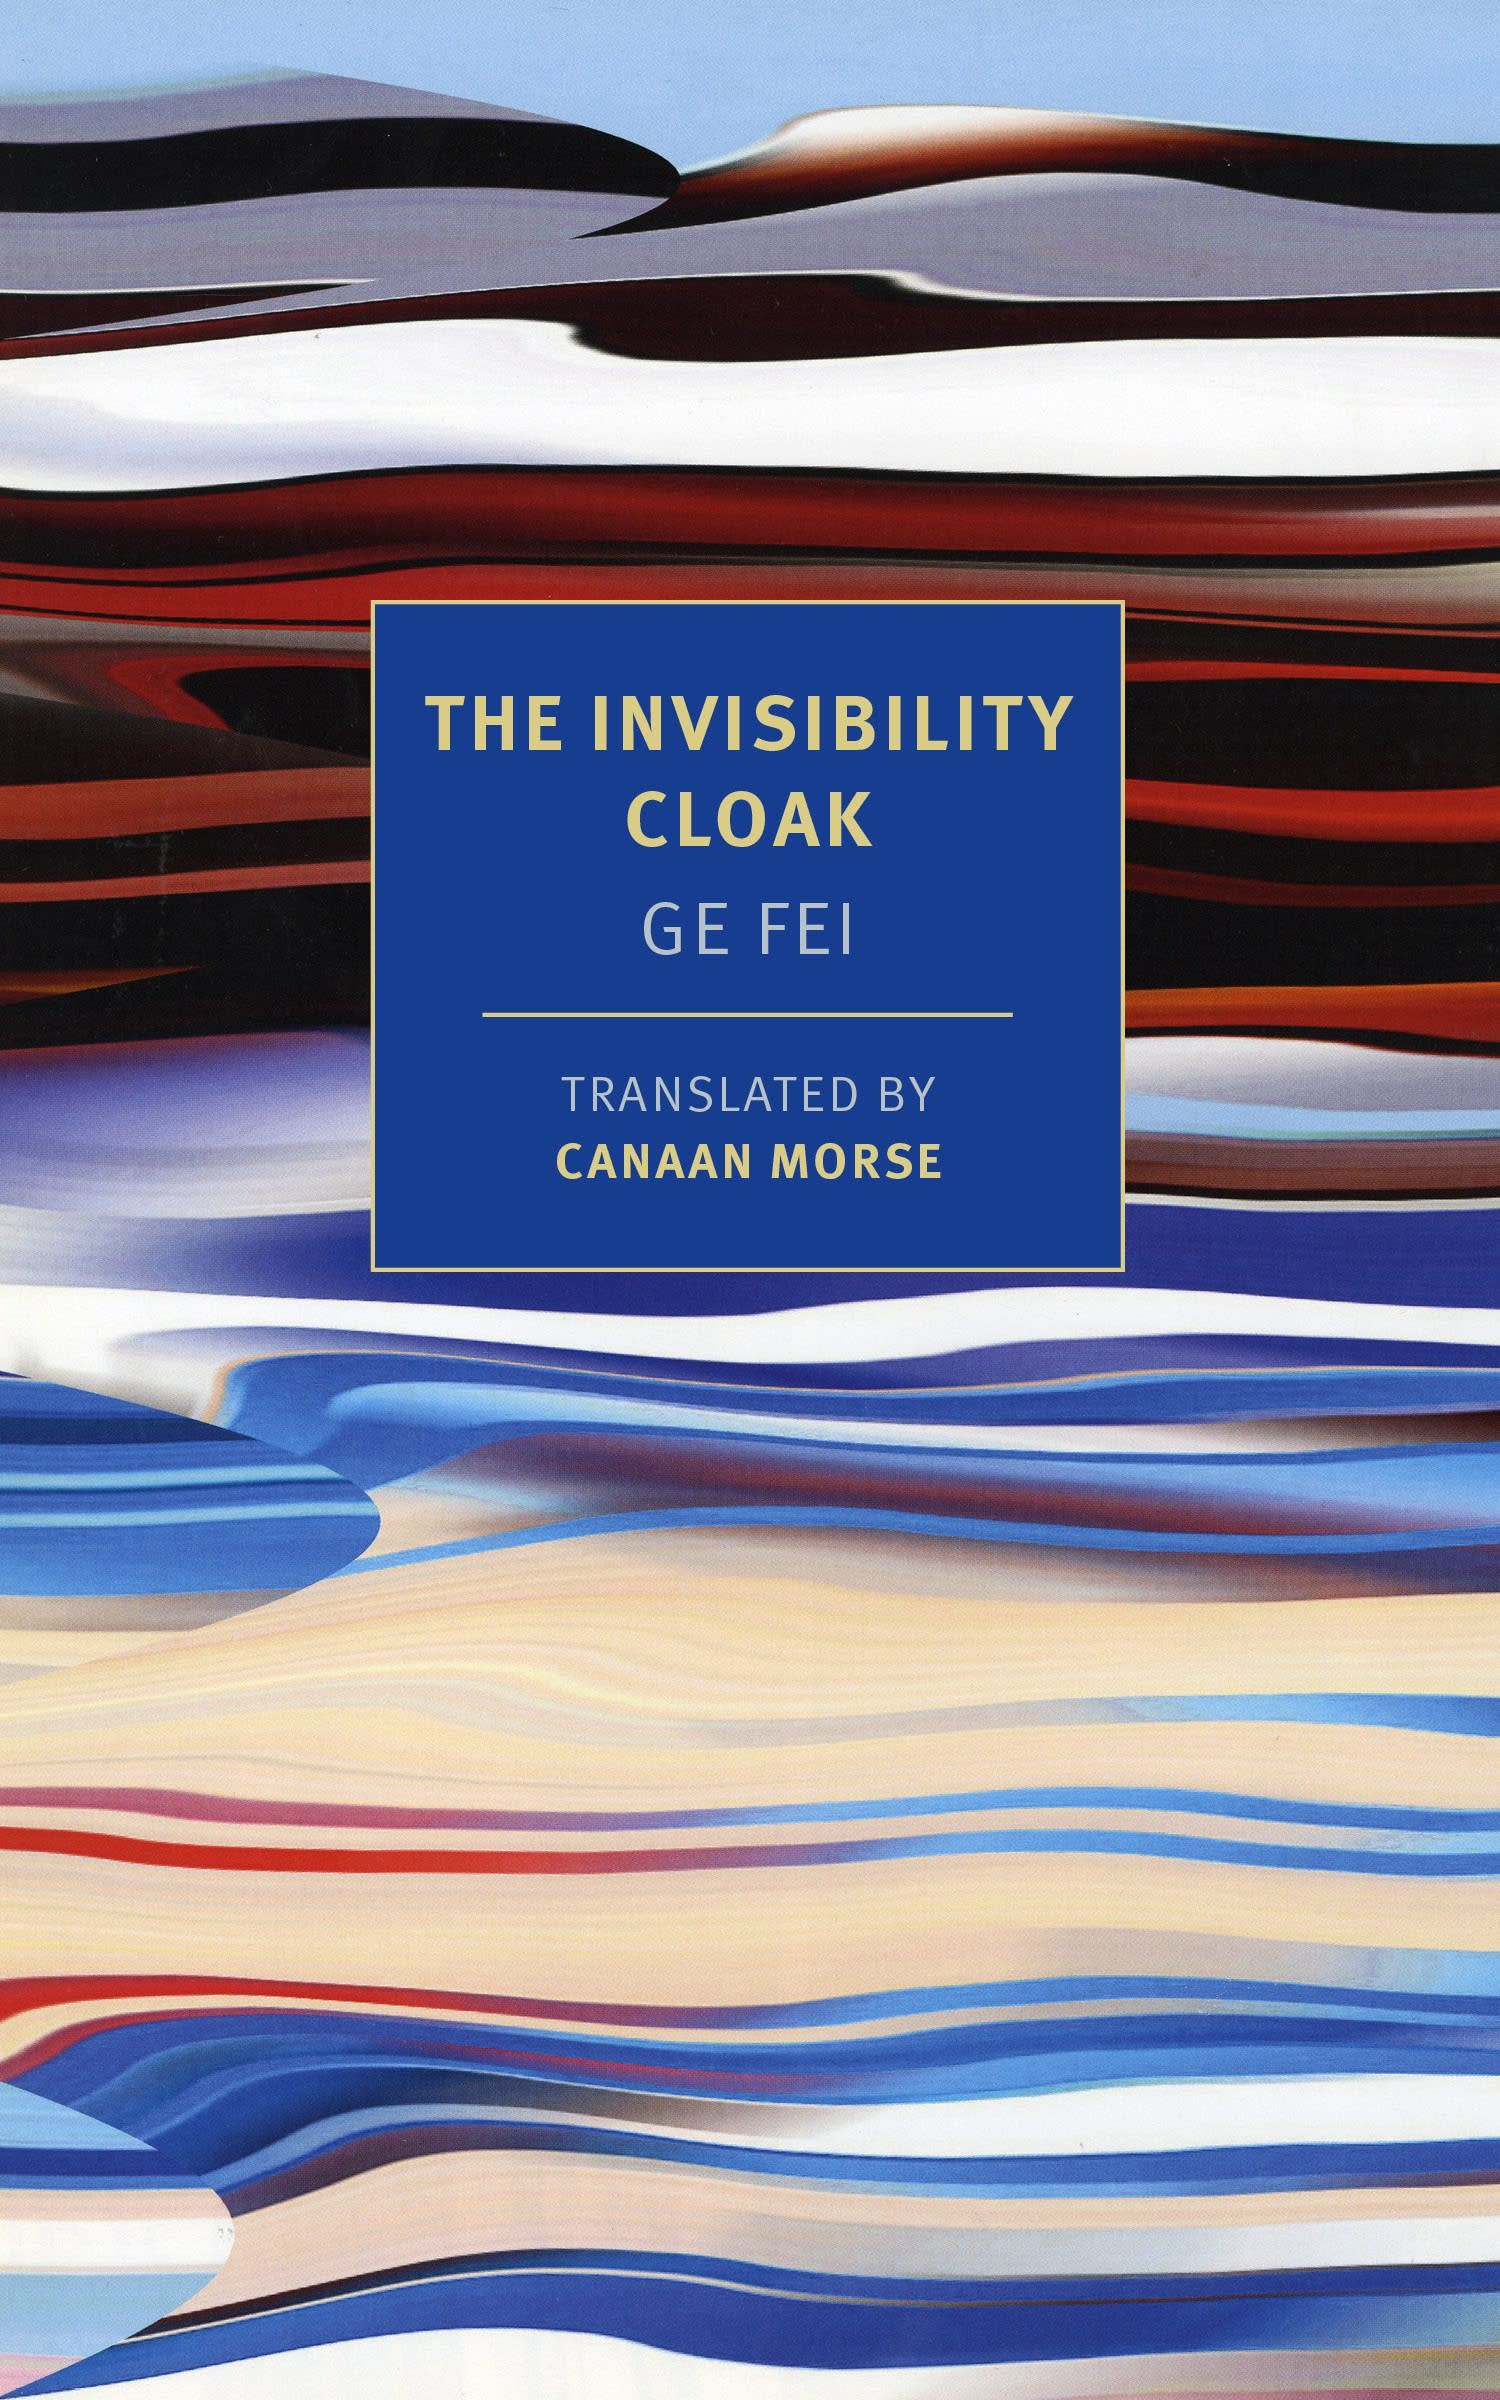 'The Invisibility Cloak' by Ge Fei